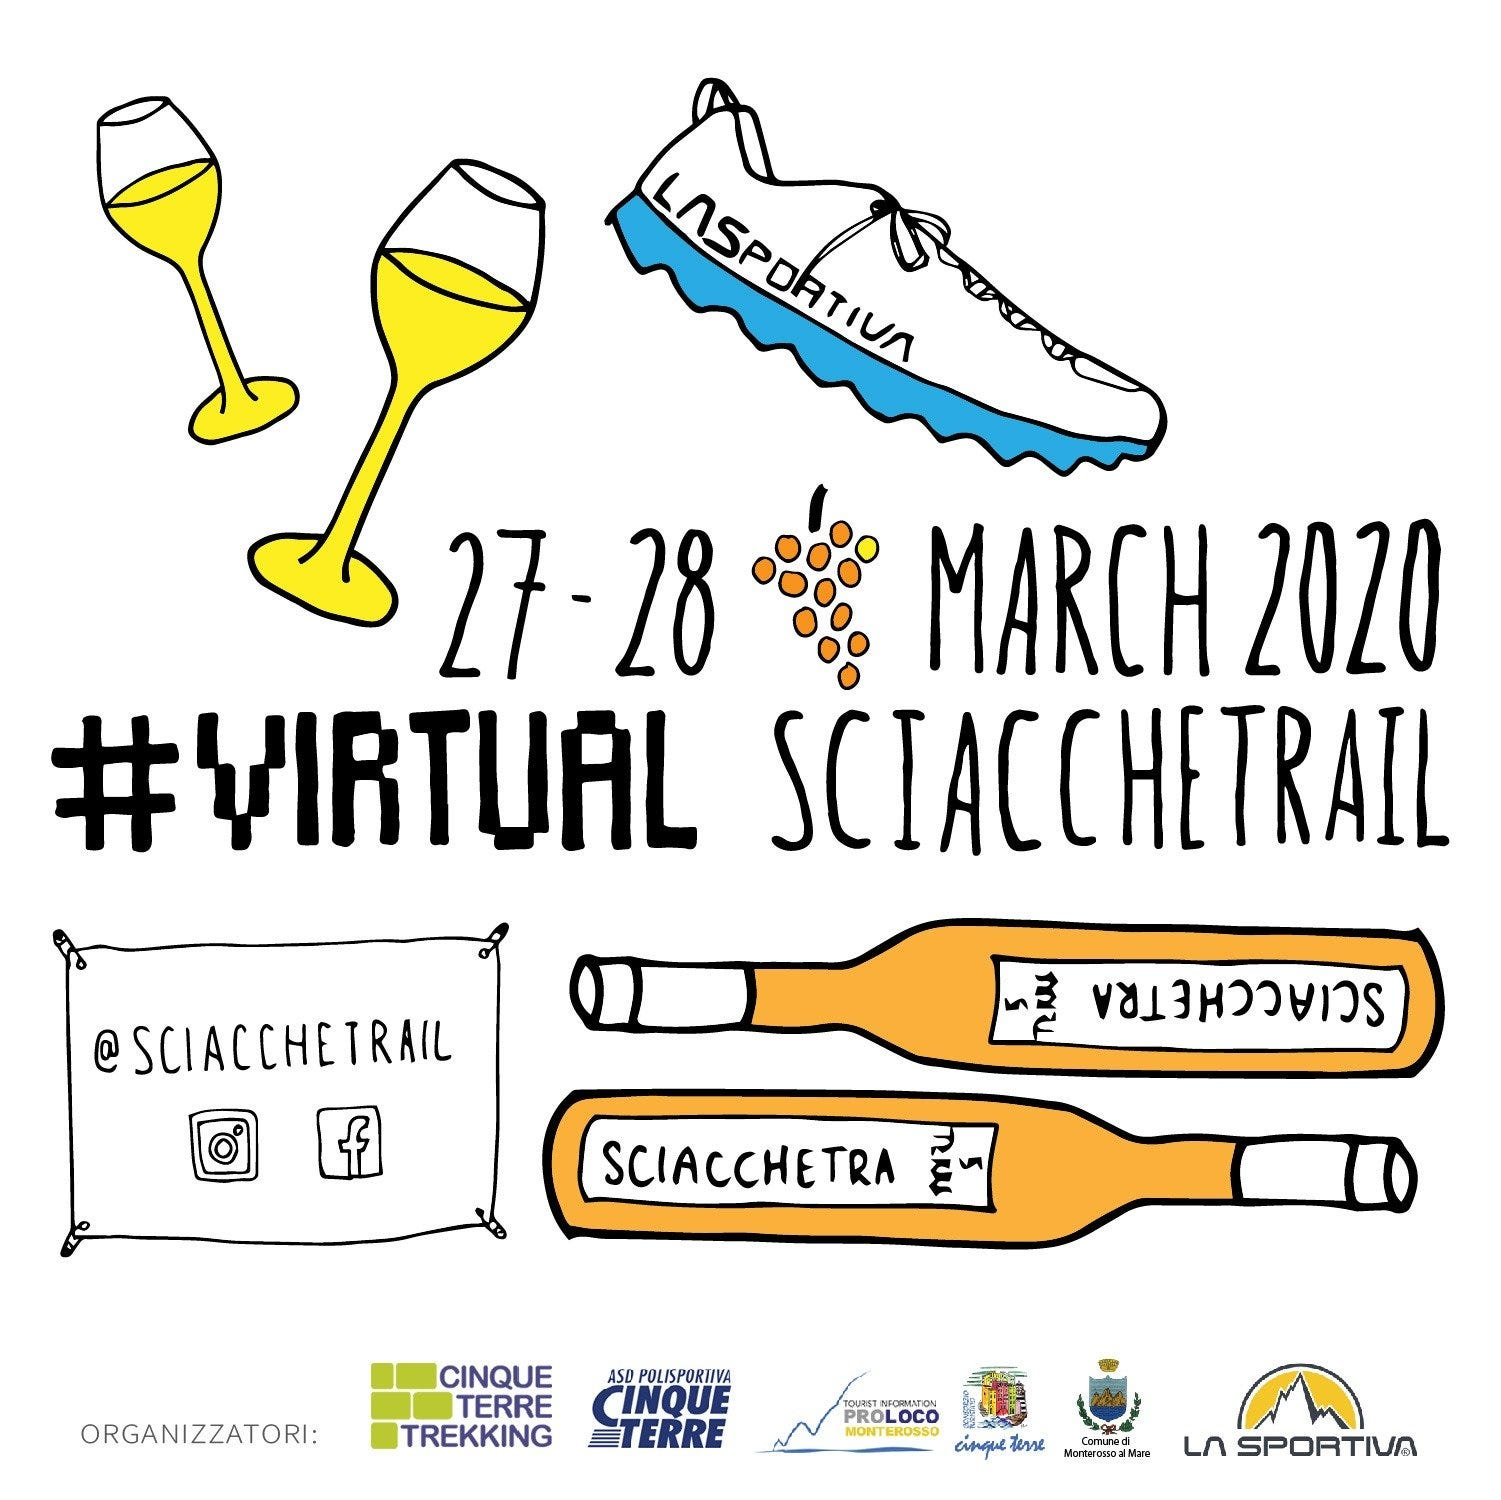 Sciacchetrail becomes virtual for the 2020 edition